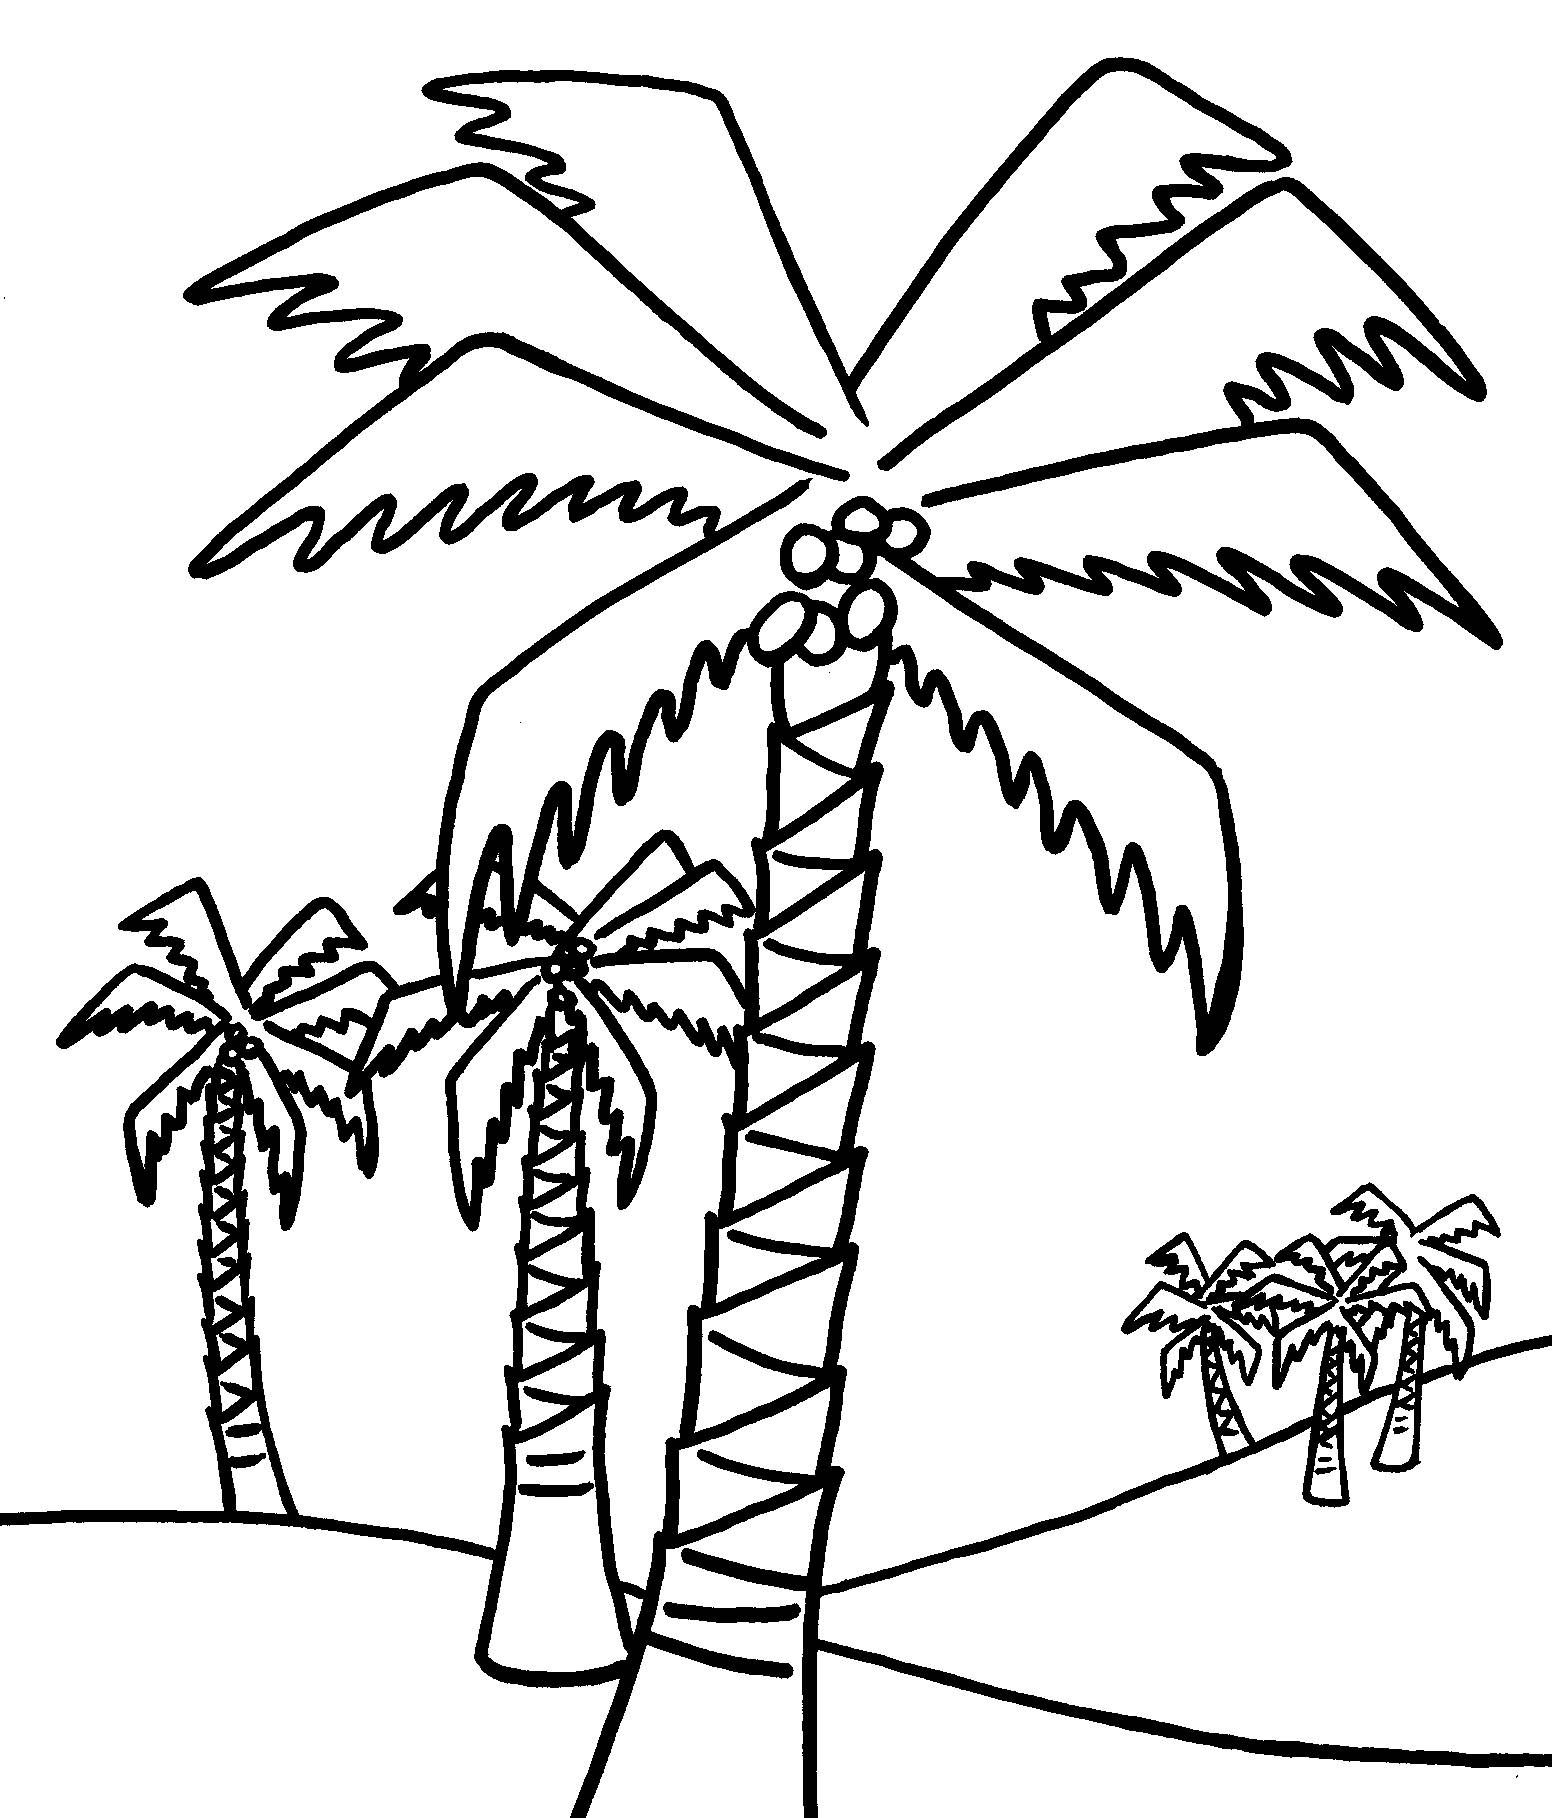 Coloring pages for kids to have fun | Colorings | Pinterest | Craft ...